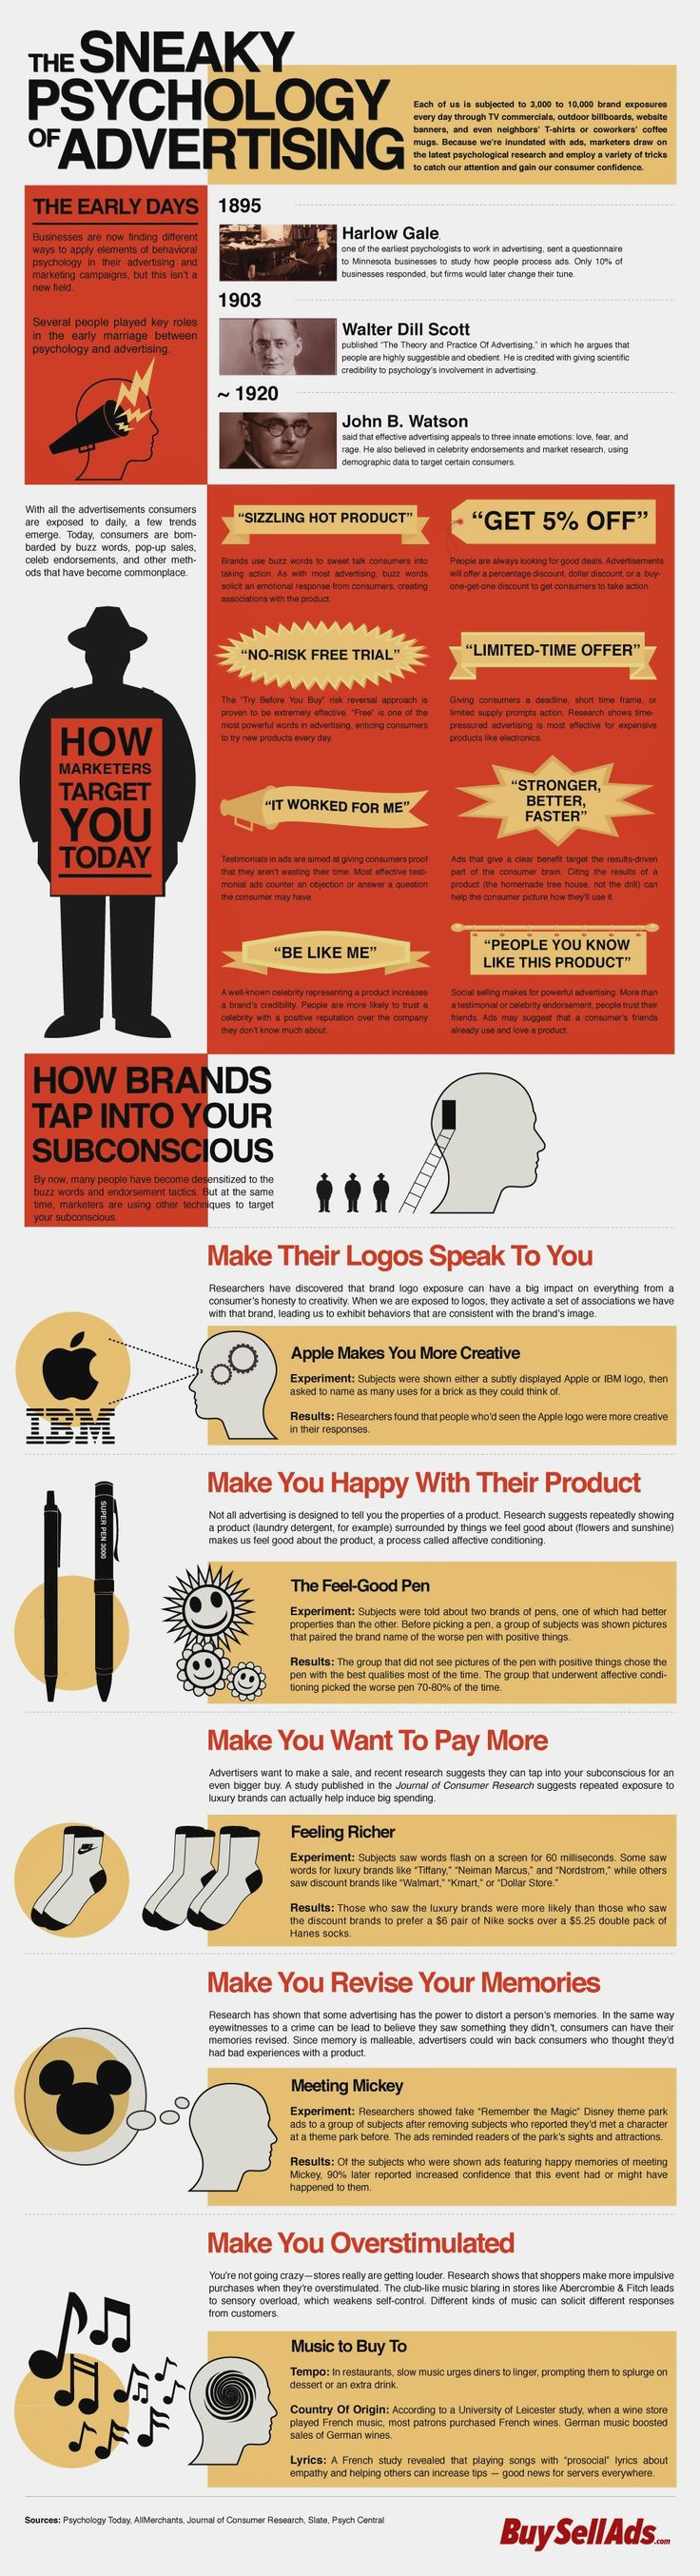 The Psychology of Advertising--love this! Not to mention subliminal advertising as well! Learn Book marketing FREE BOOK !